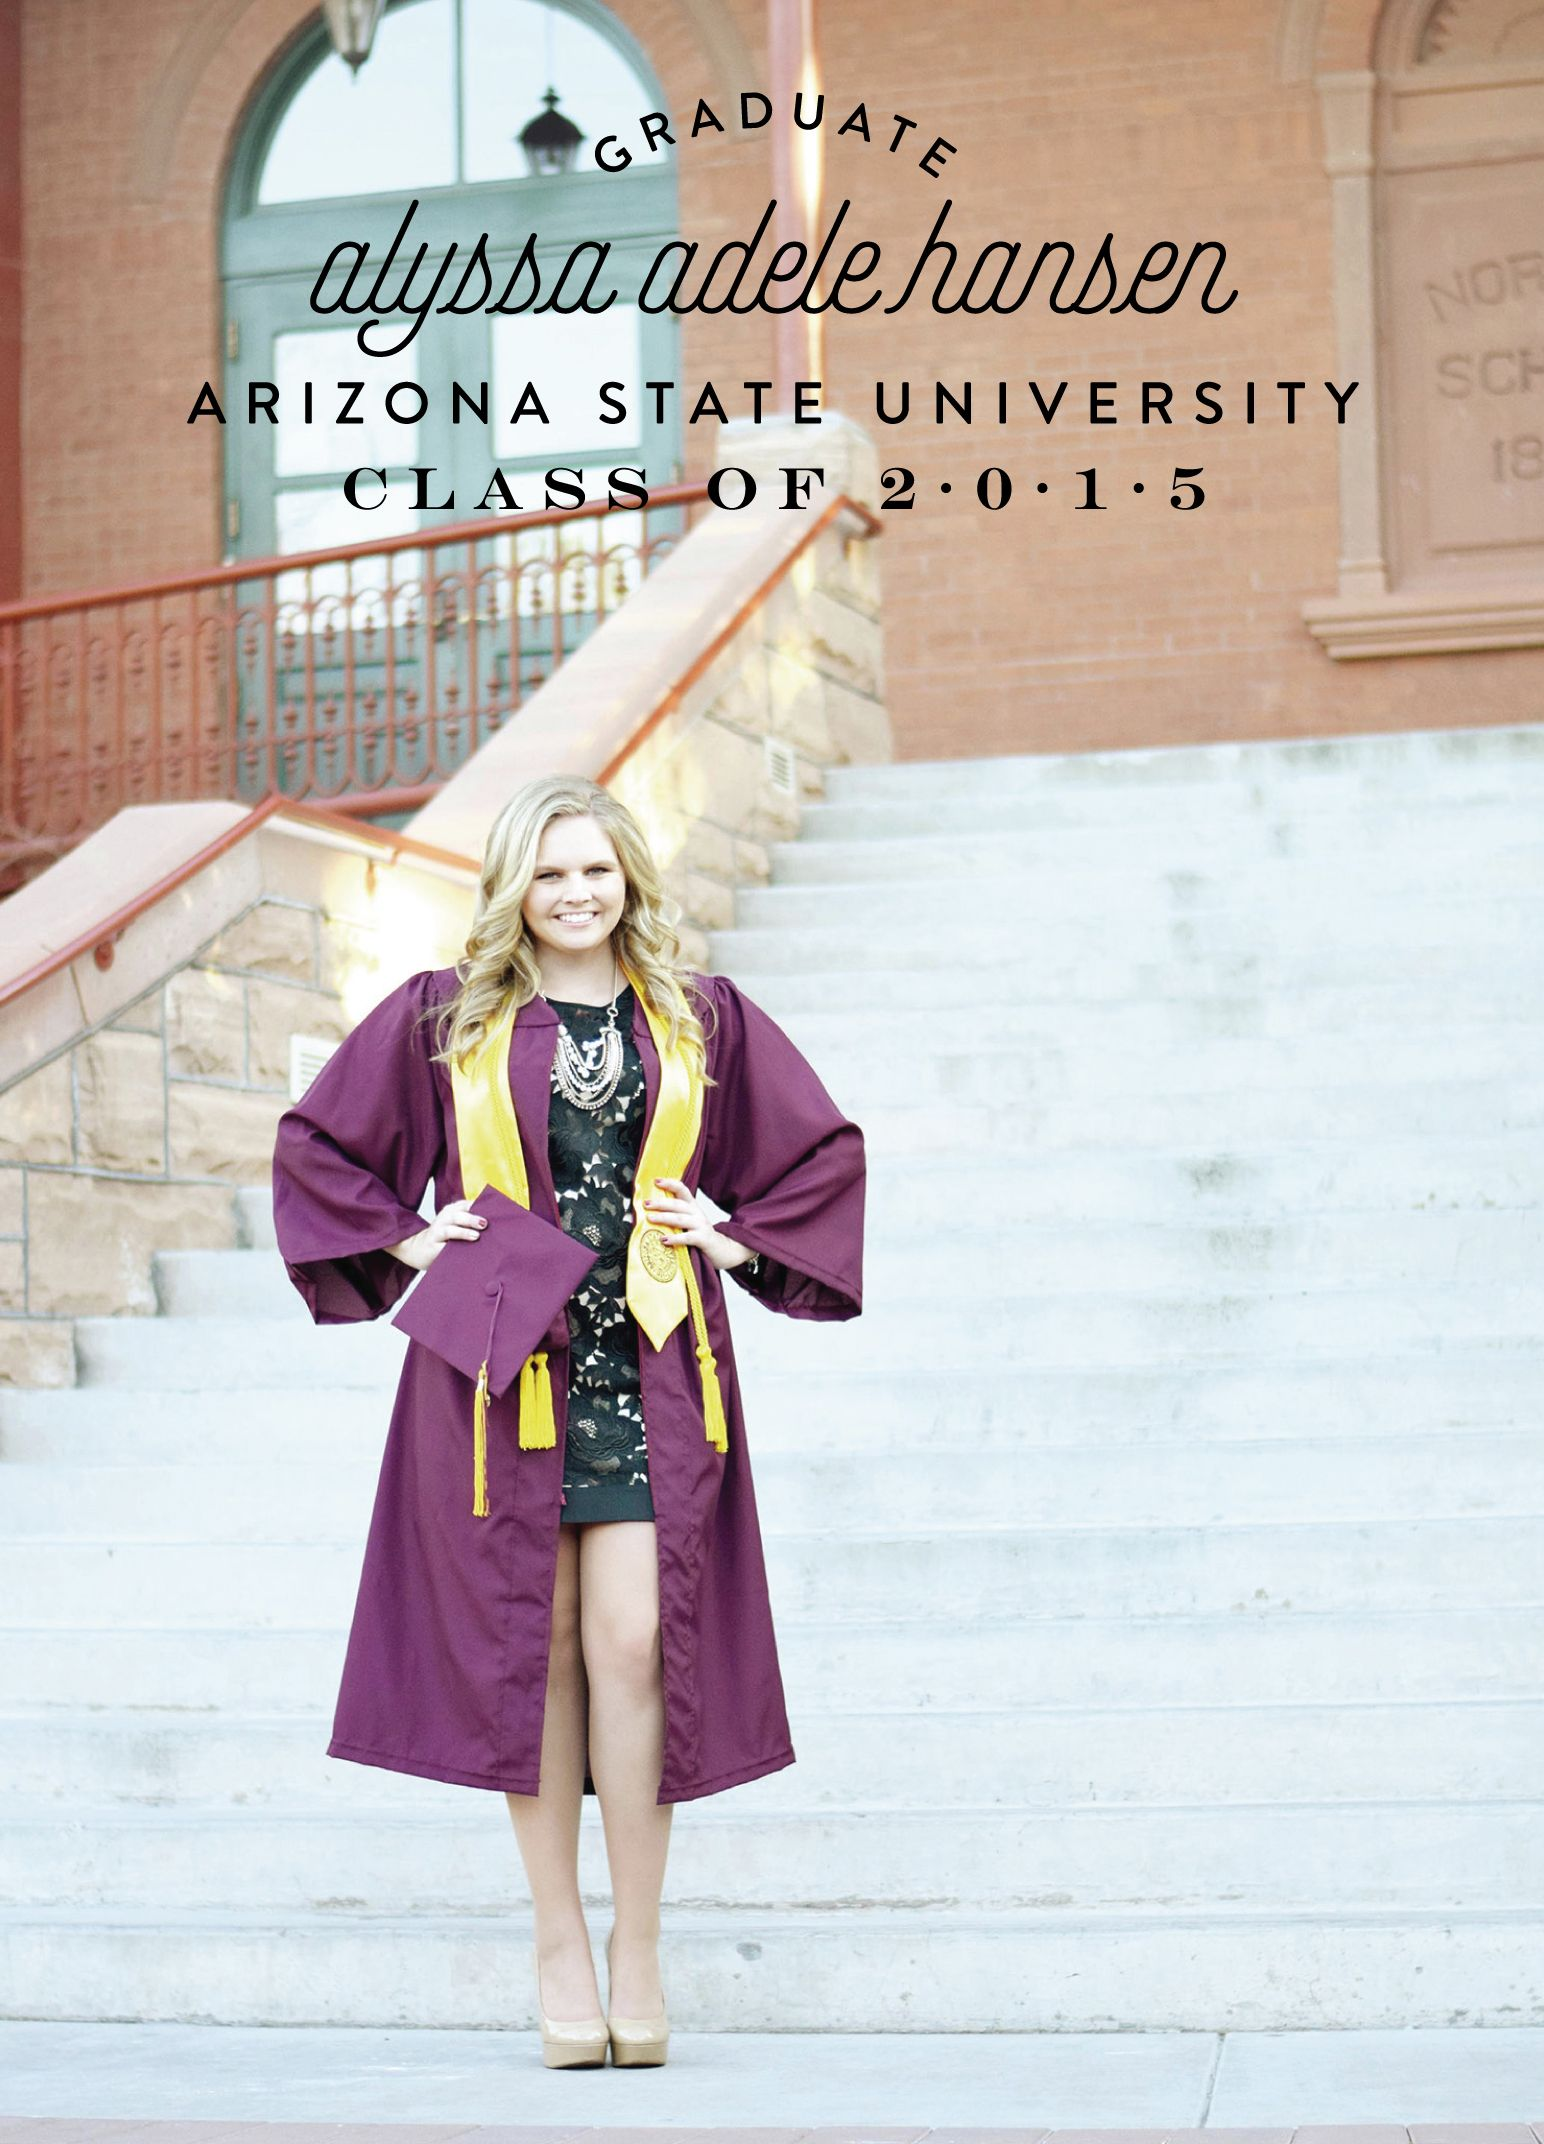 Arizona State University Graduation Announcement With Images